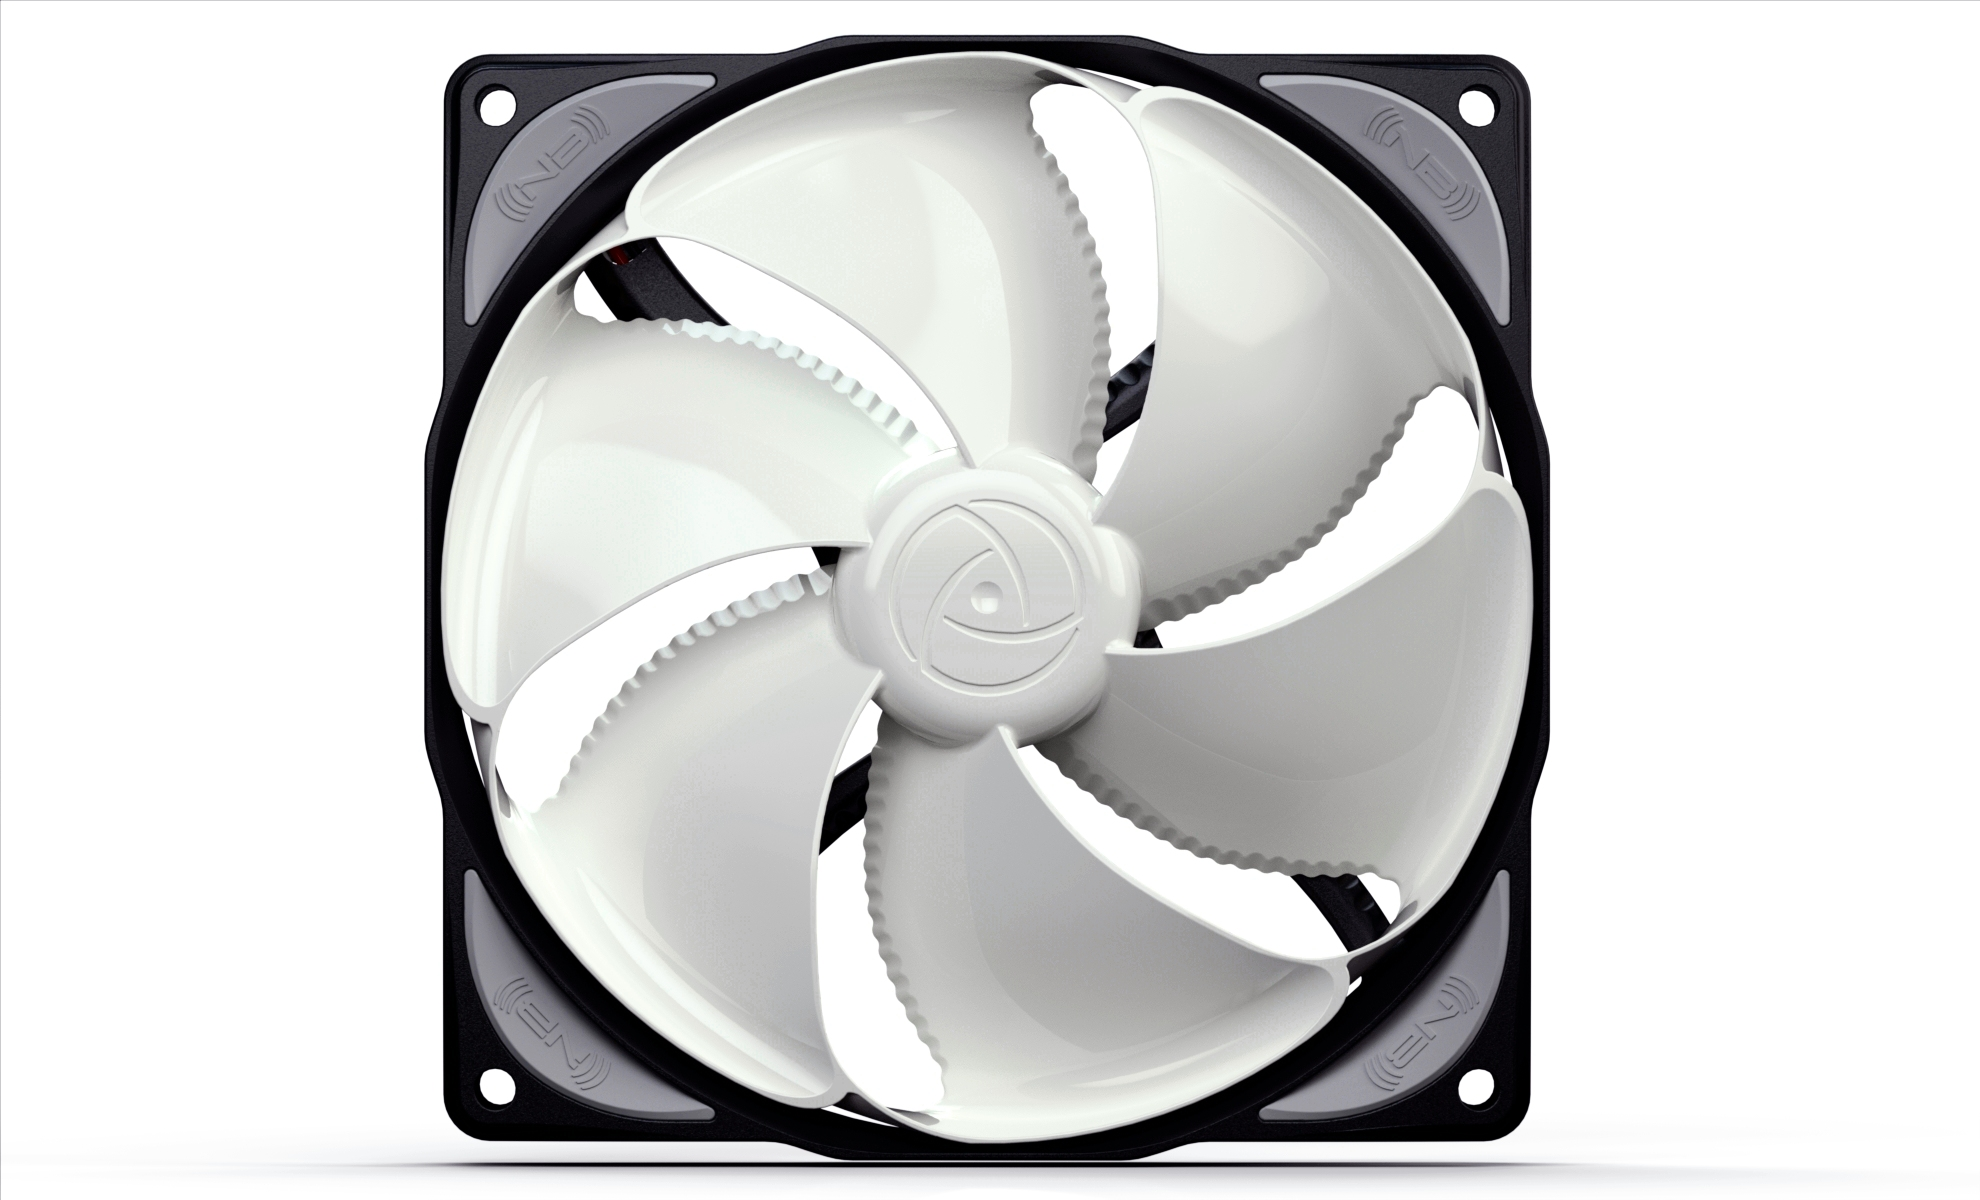 Noiseblocker Nb Eloop 120mm Two Speed Fan Wiring Diagram Note Model B12 Ps Is Also Available In Black Special Edition Name Blackedition